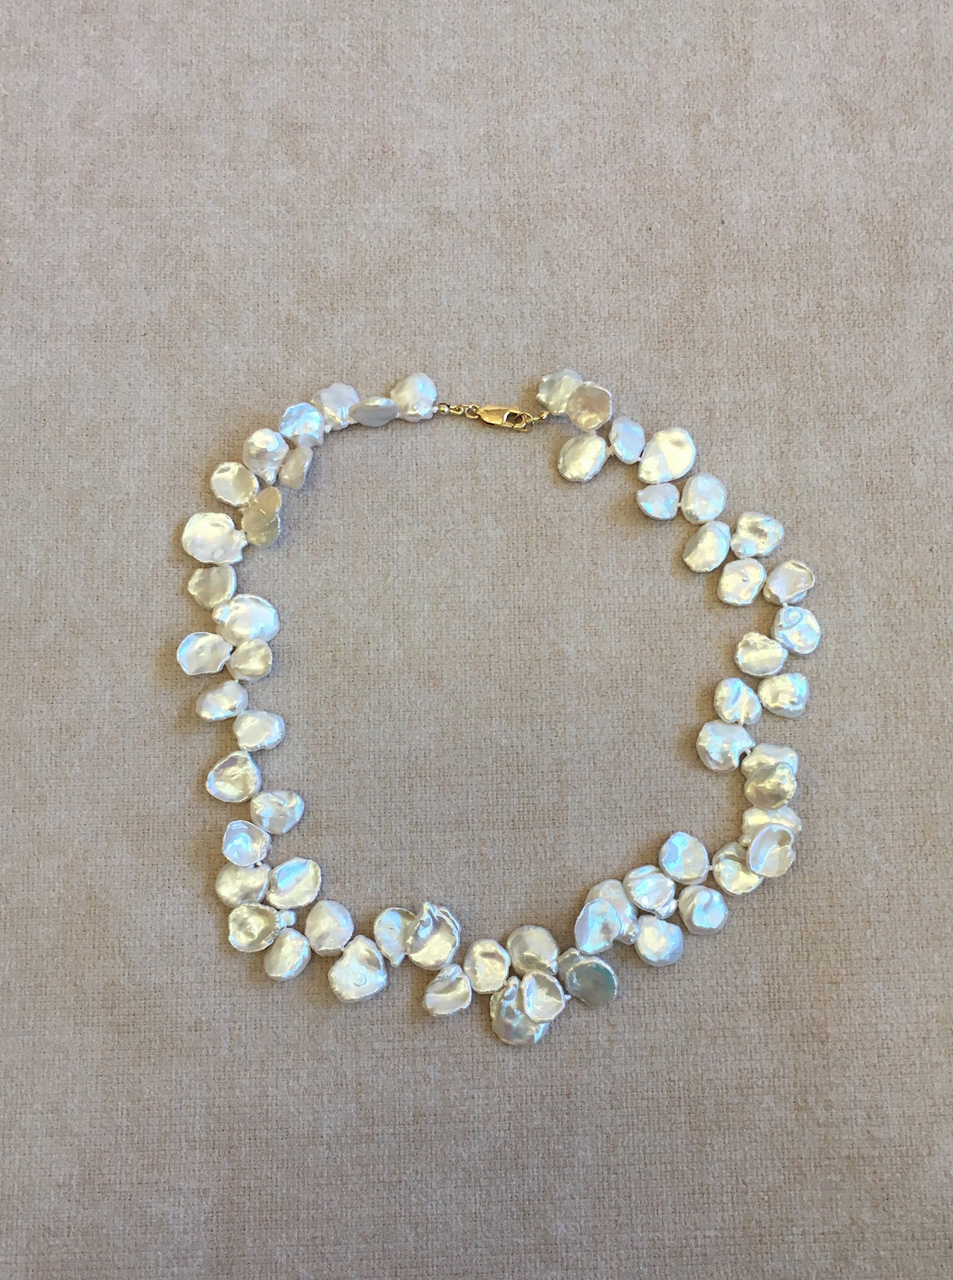 White Keshi Pearl Necklace by Christi Cafferata